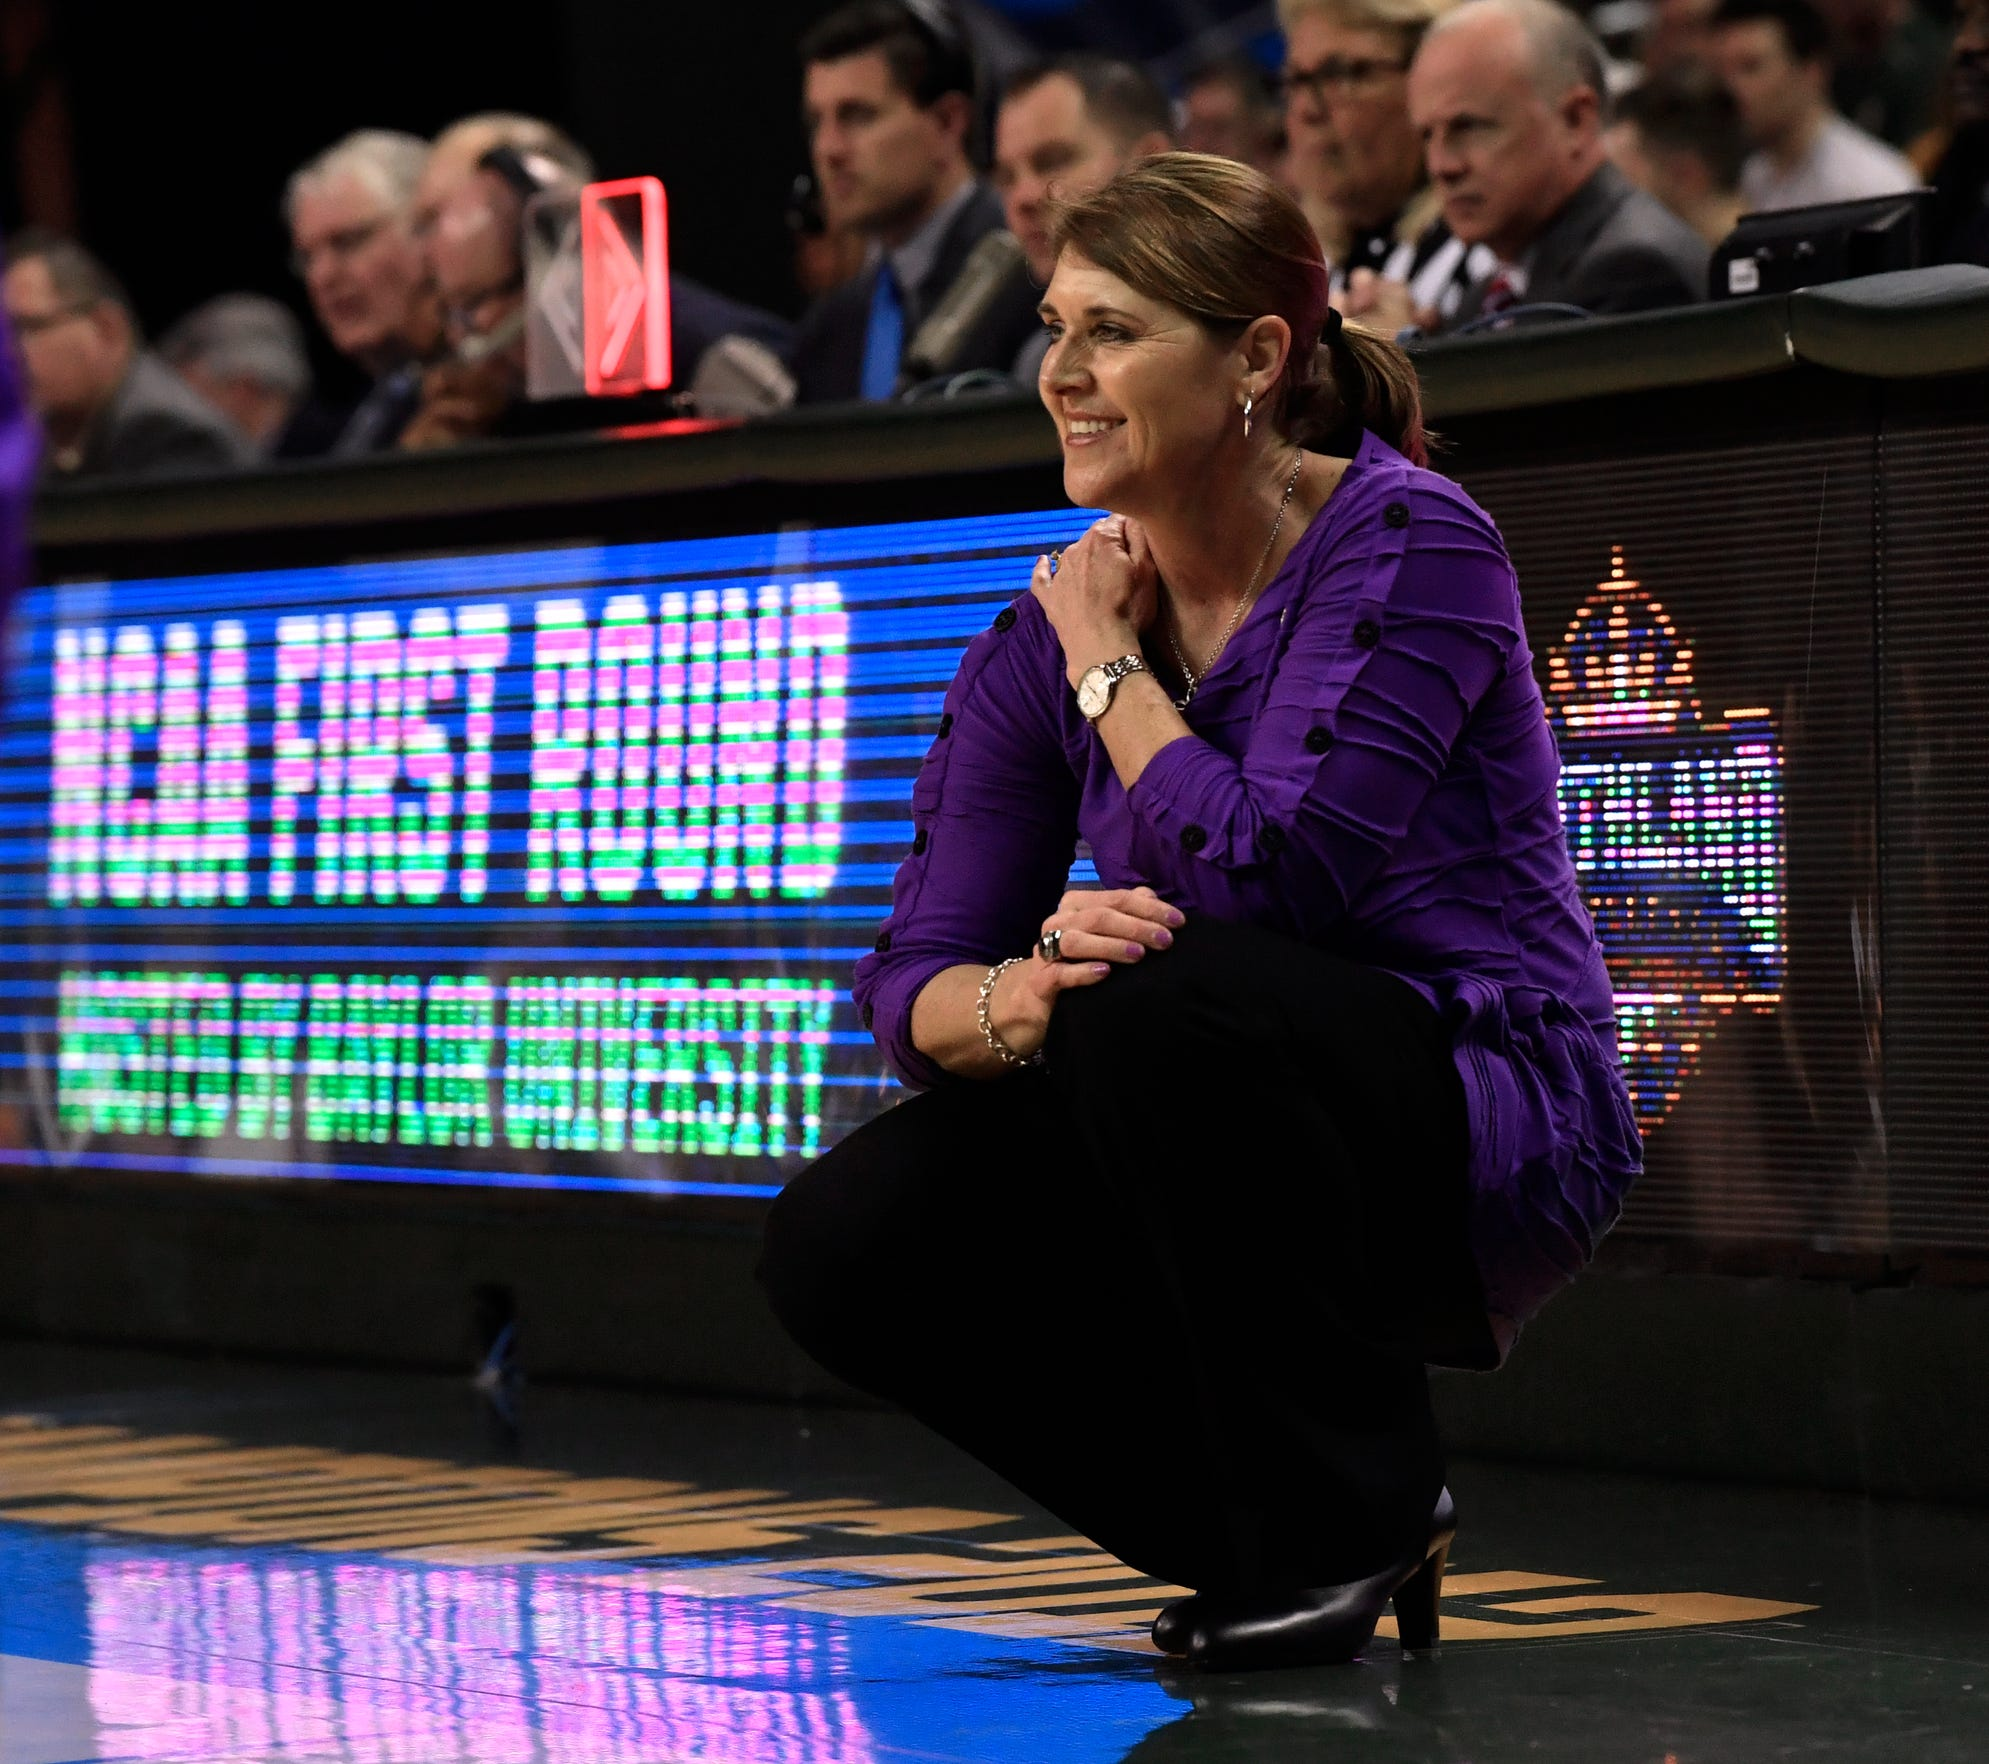 ACU head women's basketball coach Julie Goodenough watches her team play against Baylor during the NCAA Tournament women's round 1 basketball game March 23. Baylor defeated Abilene Christian University, 95-38.